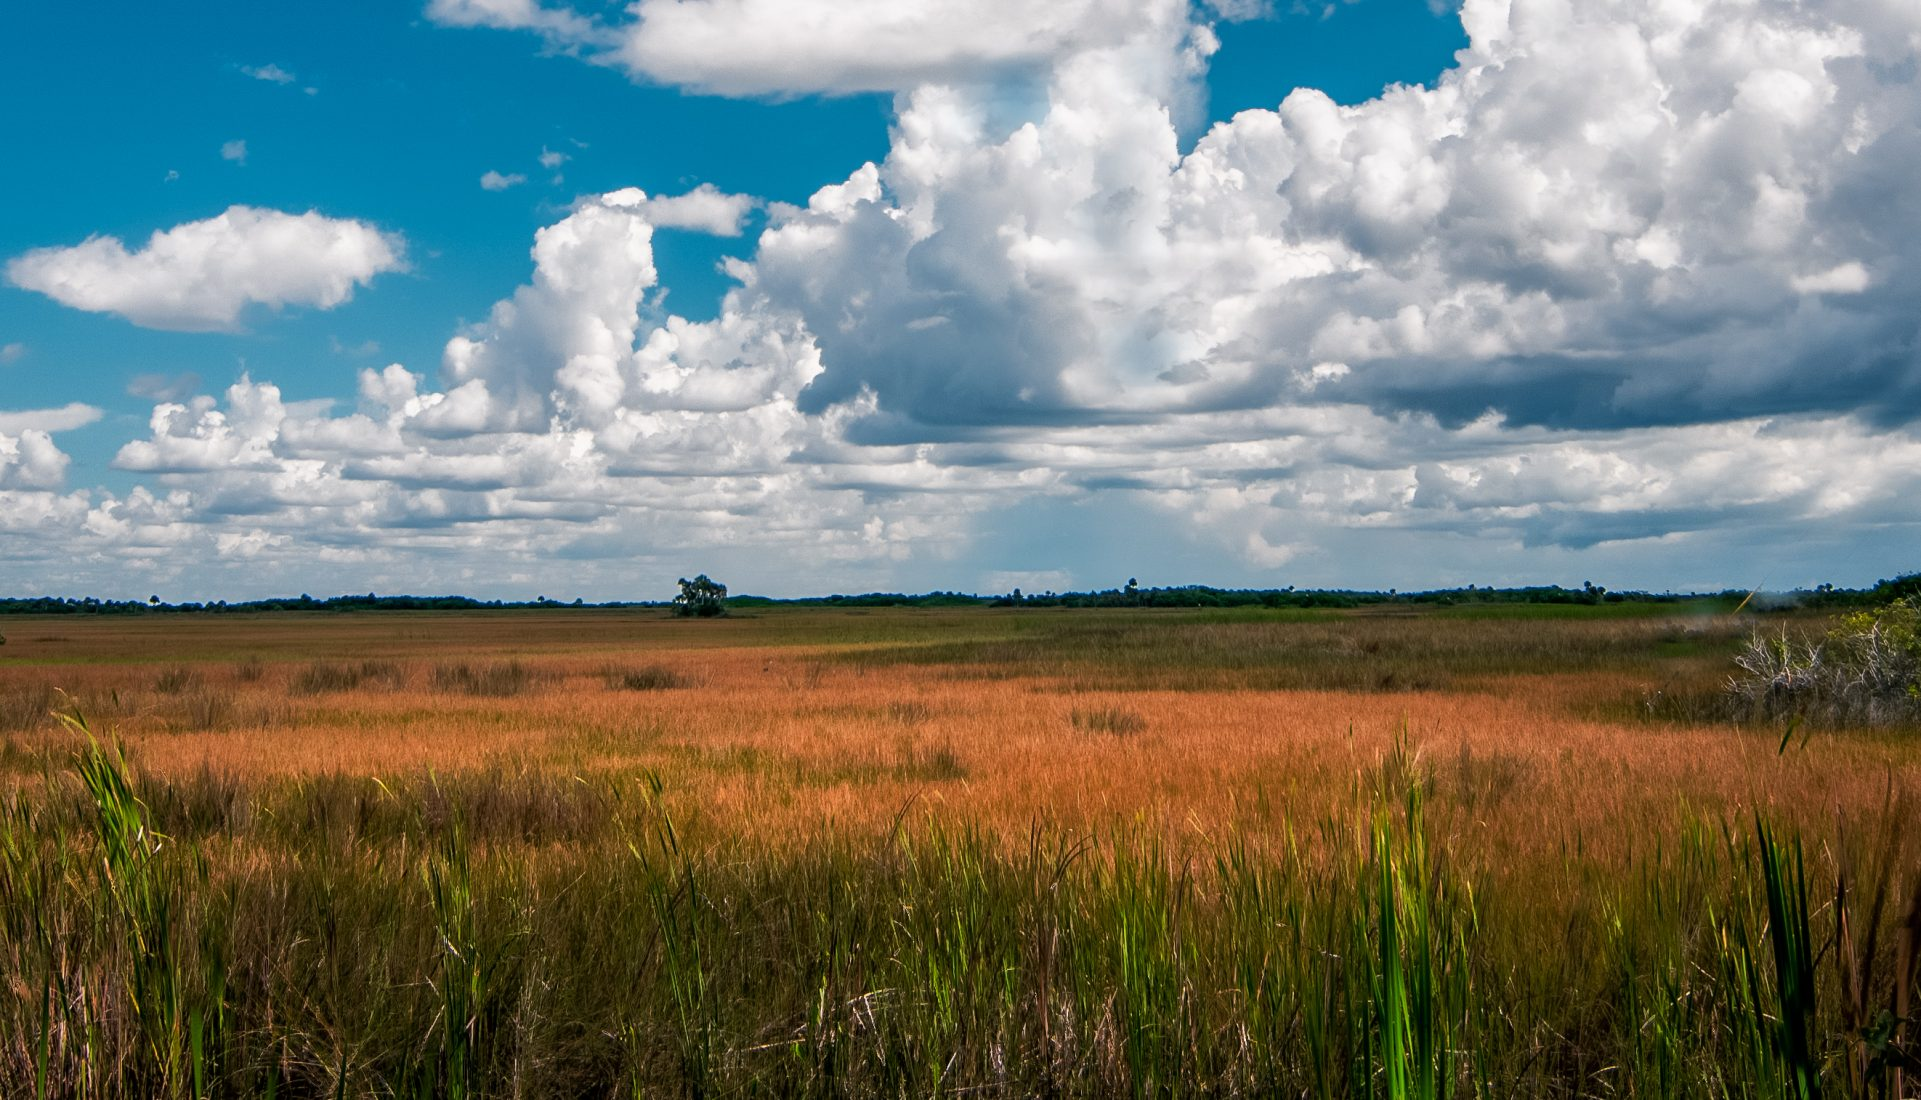 The Everglades, a River of Grass